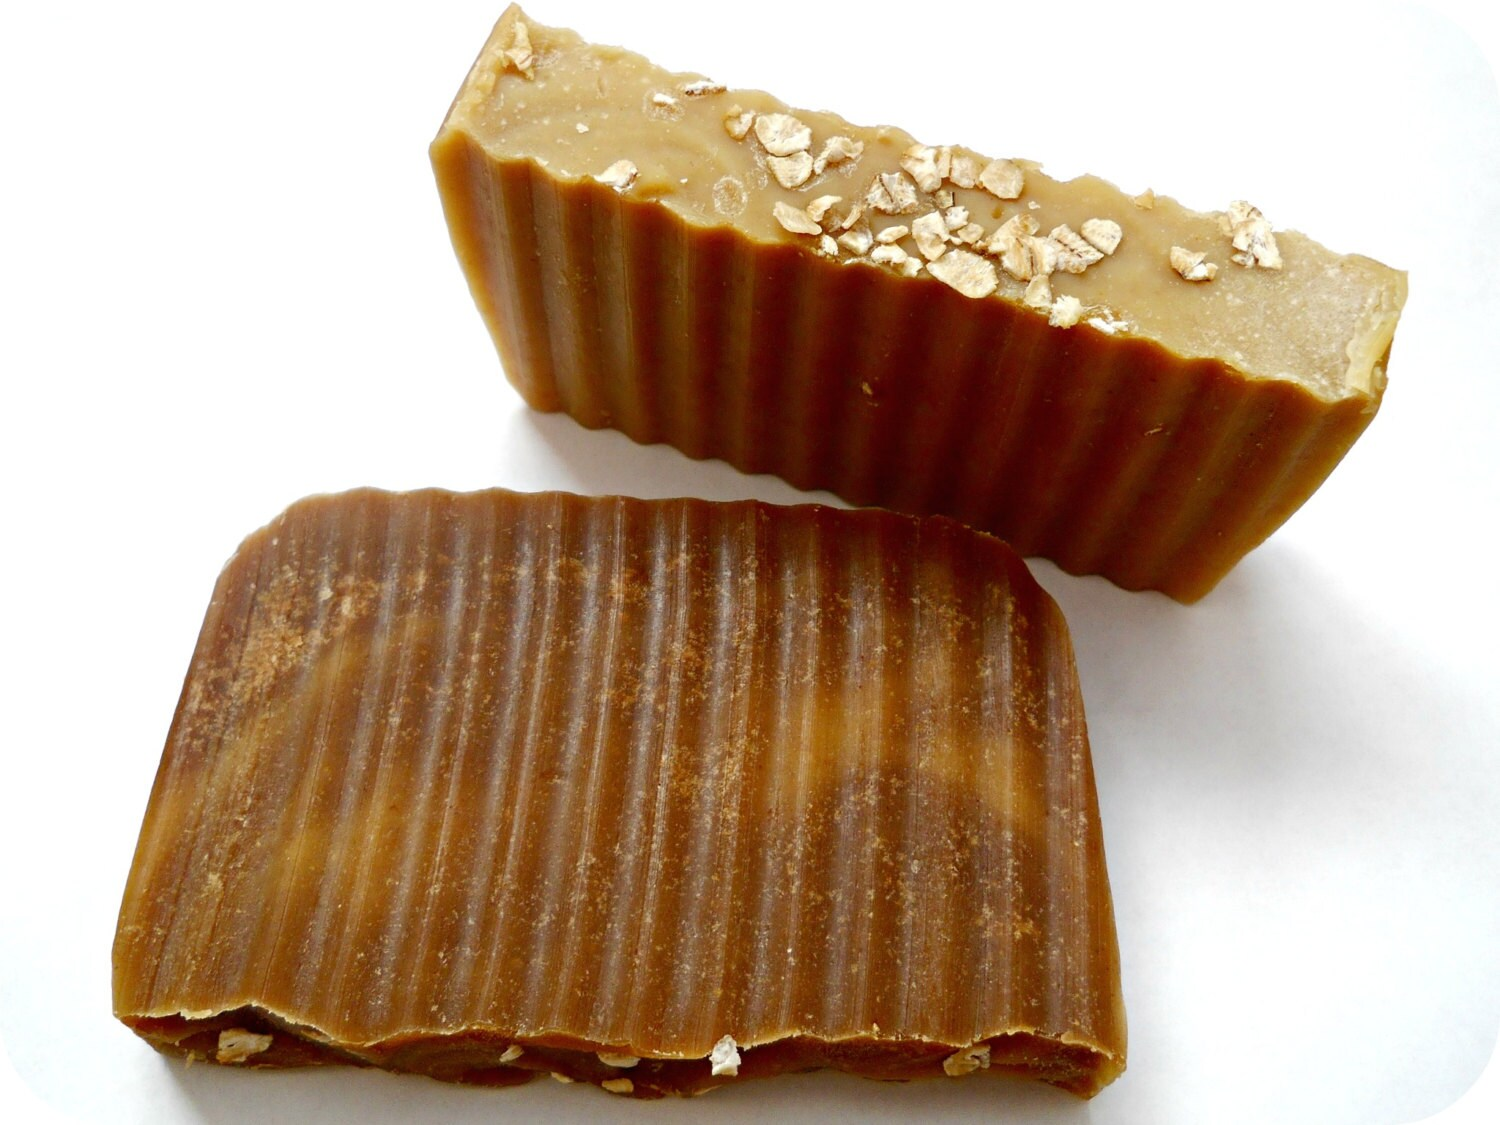 Toasted Oatmeal, Sweet Milk, and Warm Honey Cold Process Bar Soap - handmade & natural - almond, vanilla, and anise scented or unscented